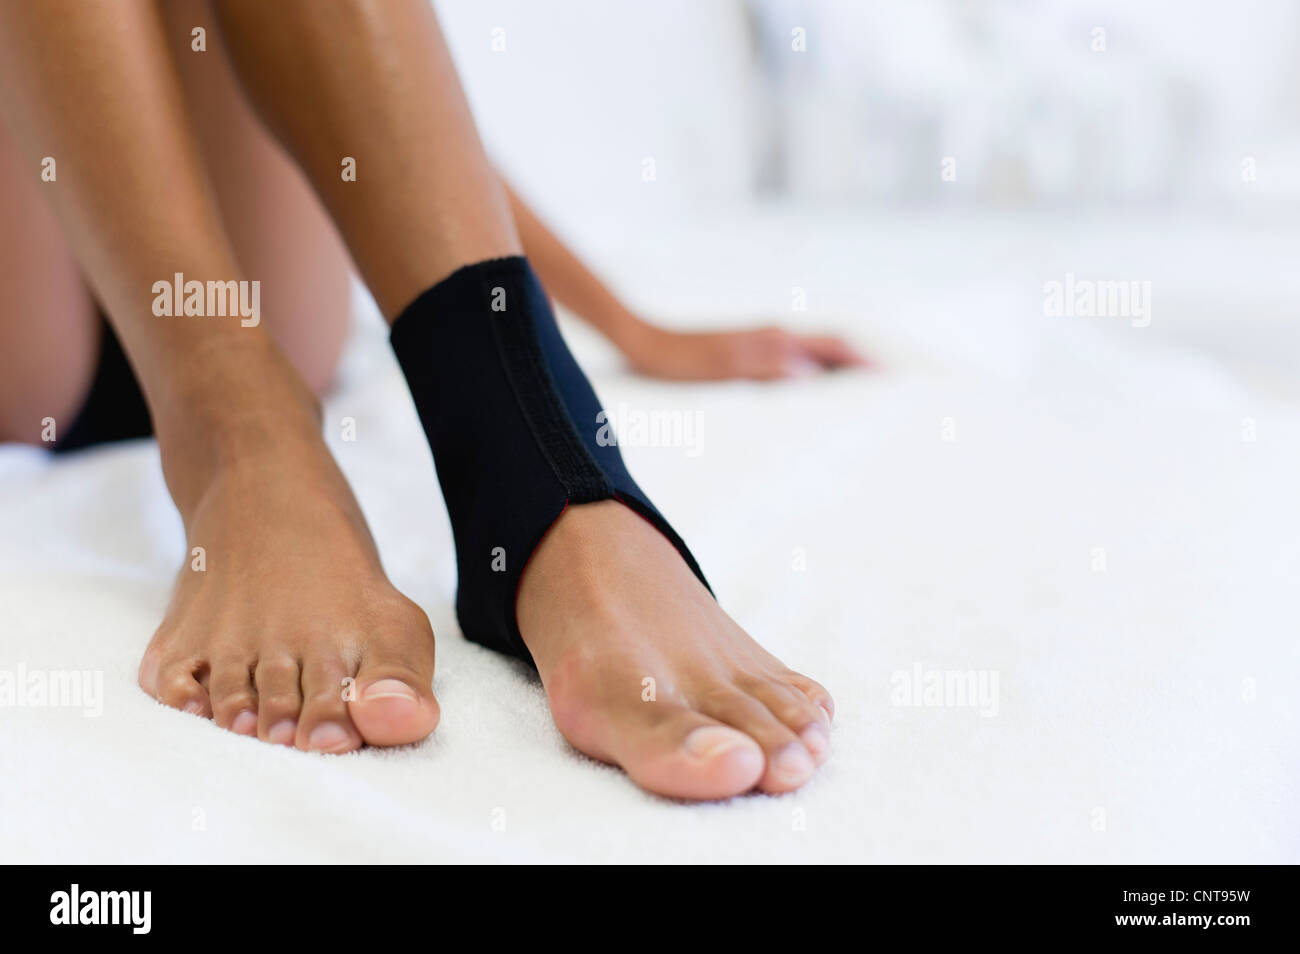 Woman wearing ankle brace, low section - Stock Image